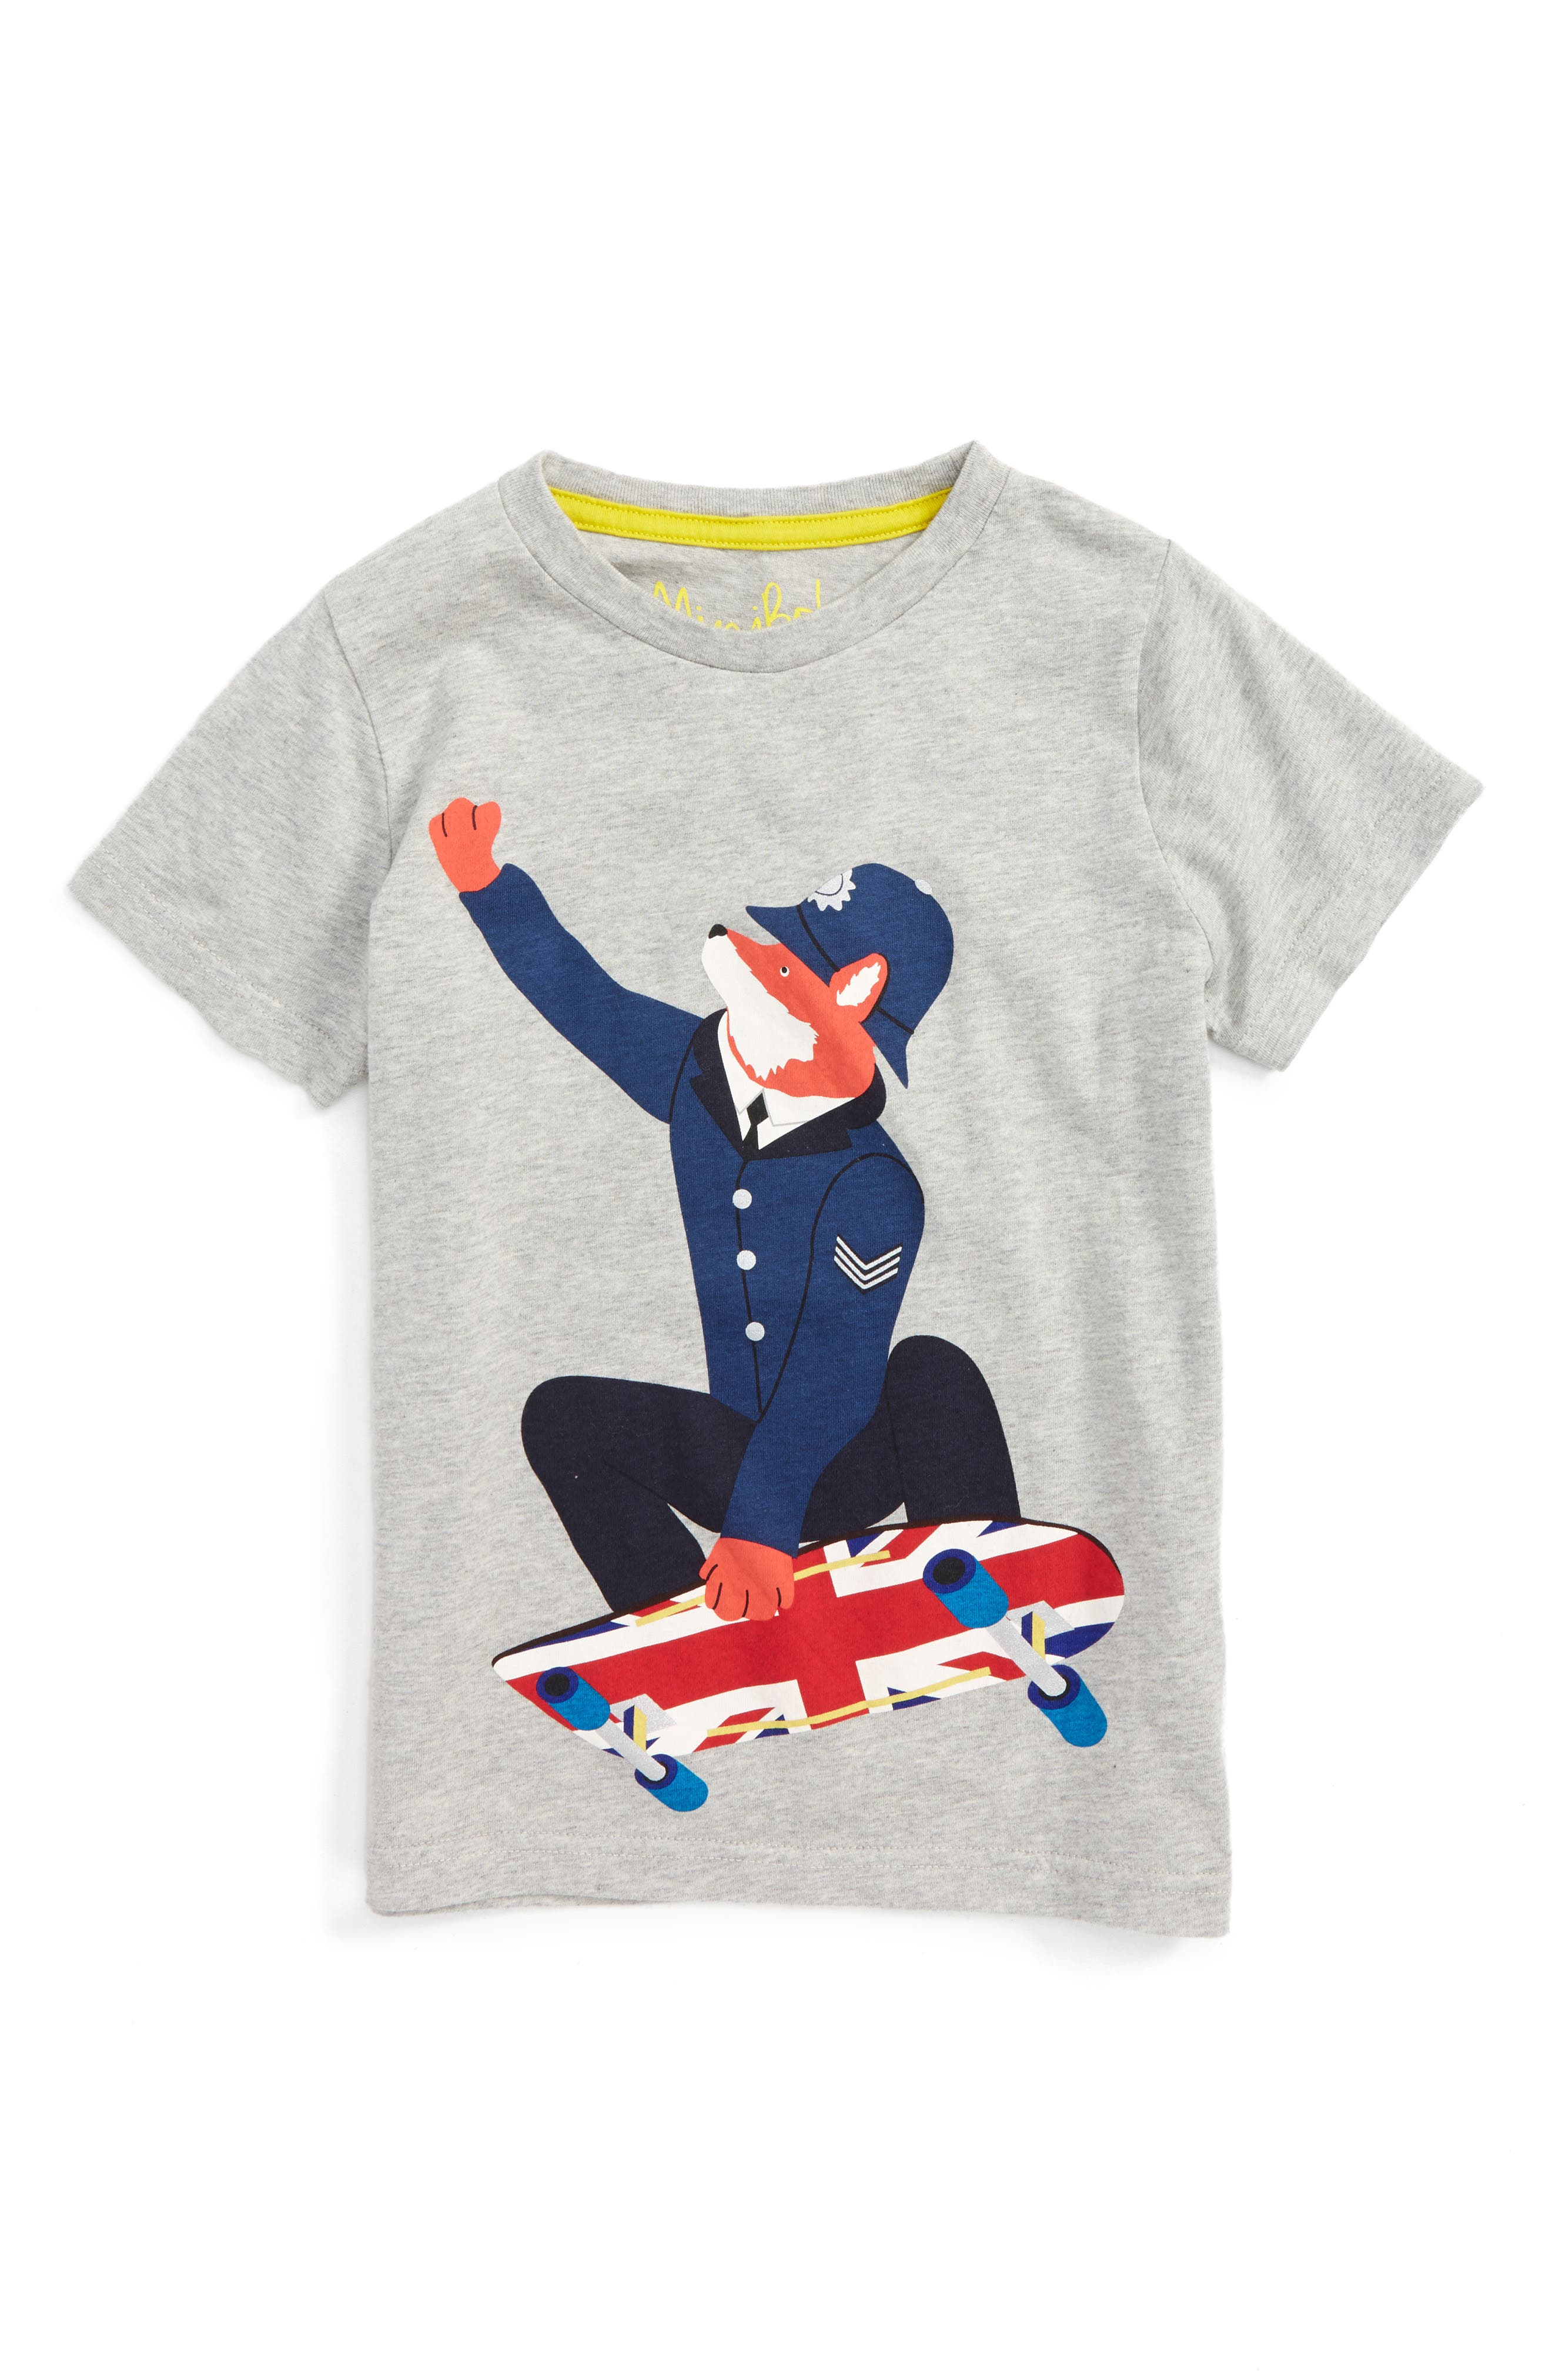 Alternate Image 1 Selected - Mini Boden Great British Bobby Fox Graphic T-Shirt (Toddler Boys, Little Boys & Big Boys)